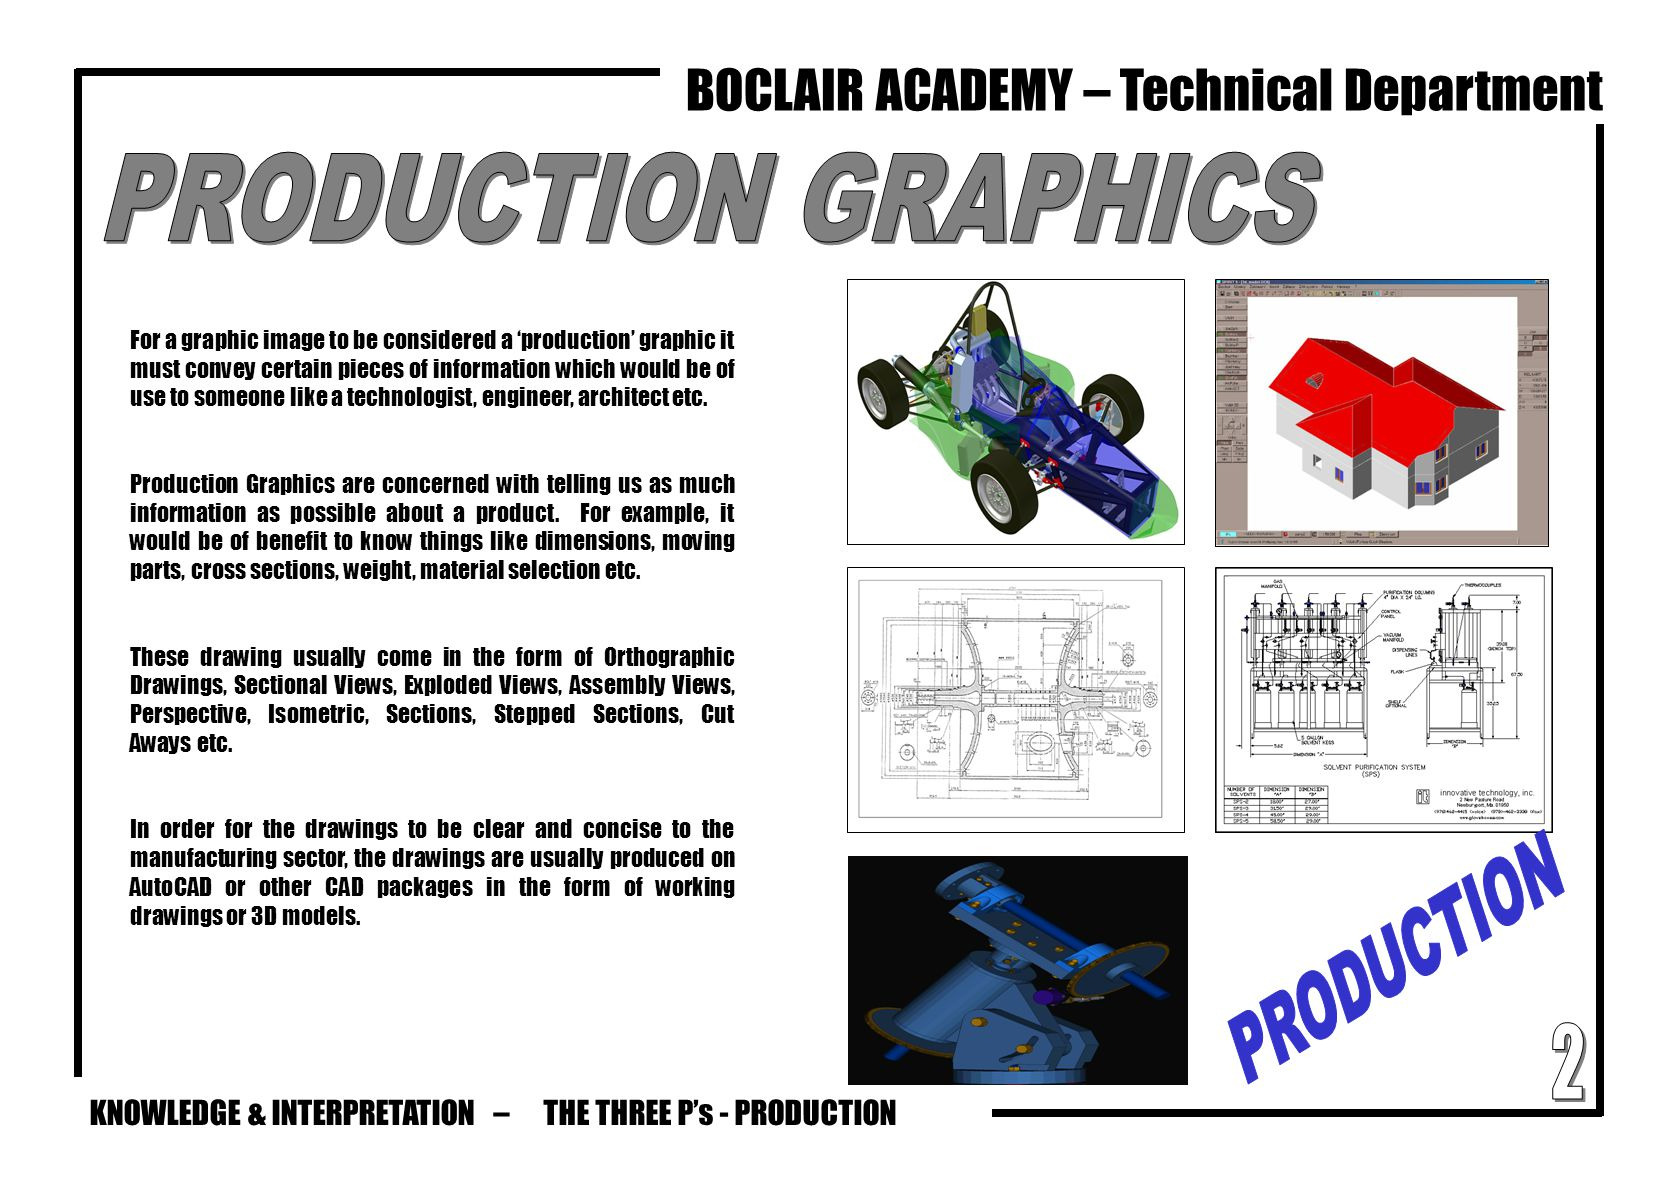 PRODUCTION GRAPHICS PRODUCTION 2 THE THREE P's - PRODUCTION